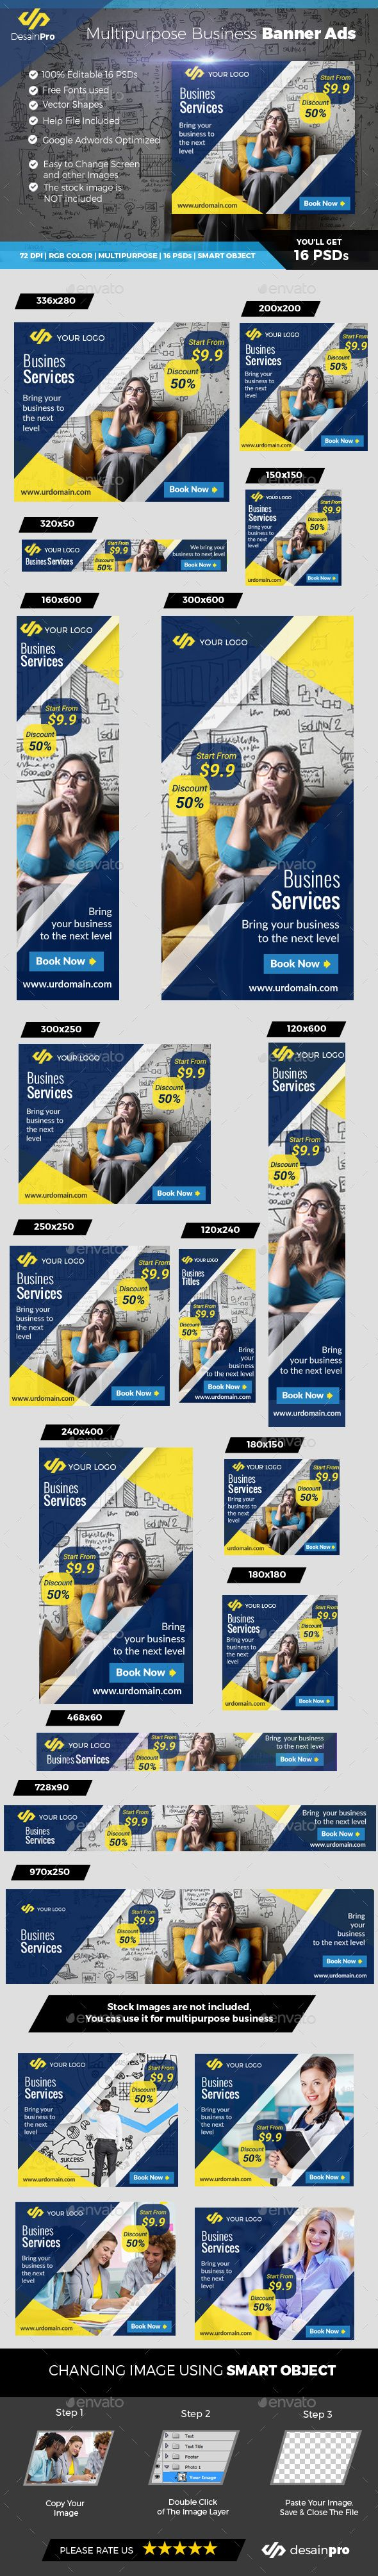 Business Banner Ads - Banners & Ads Web Elements Download here : https://graphicriver.net/item/business-banner-ads/19367859?s_rank=110&ref=Al-fatih